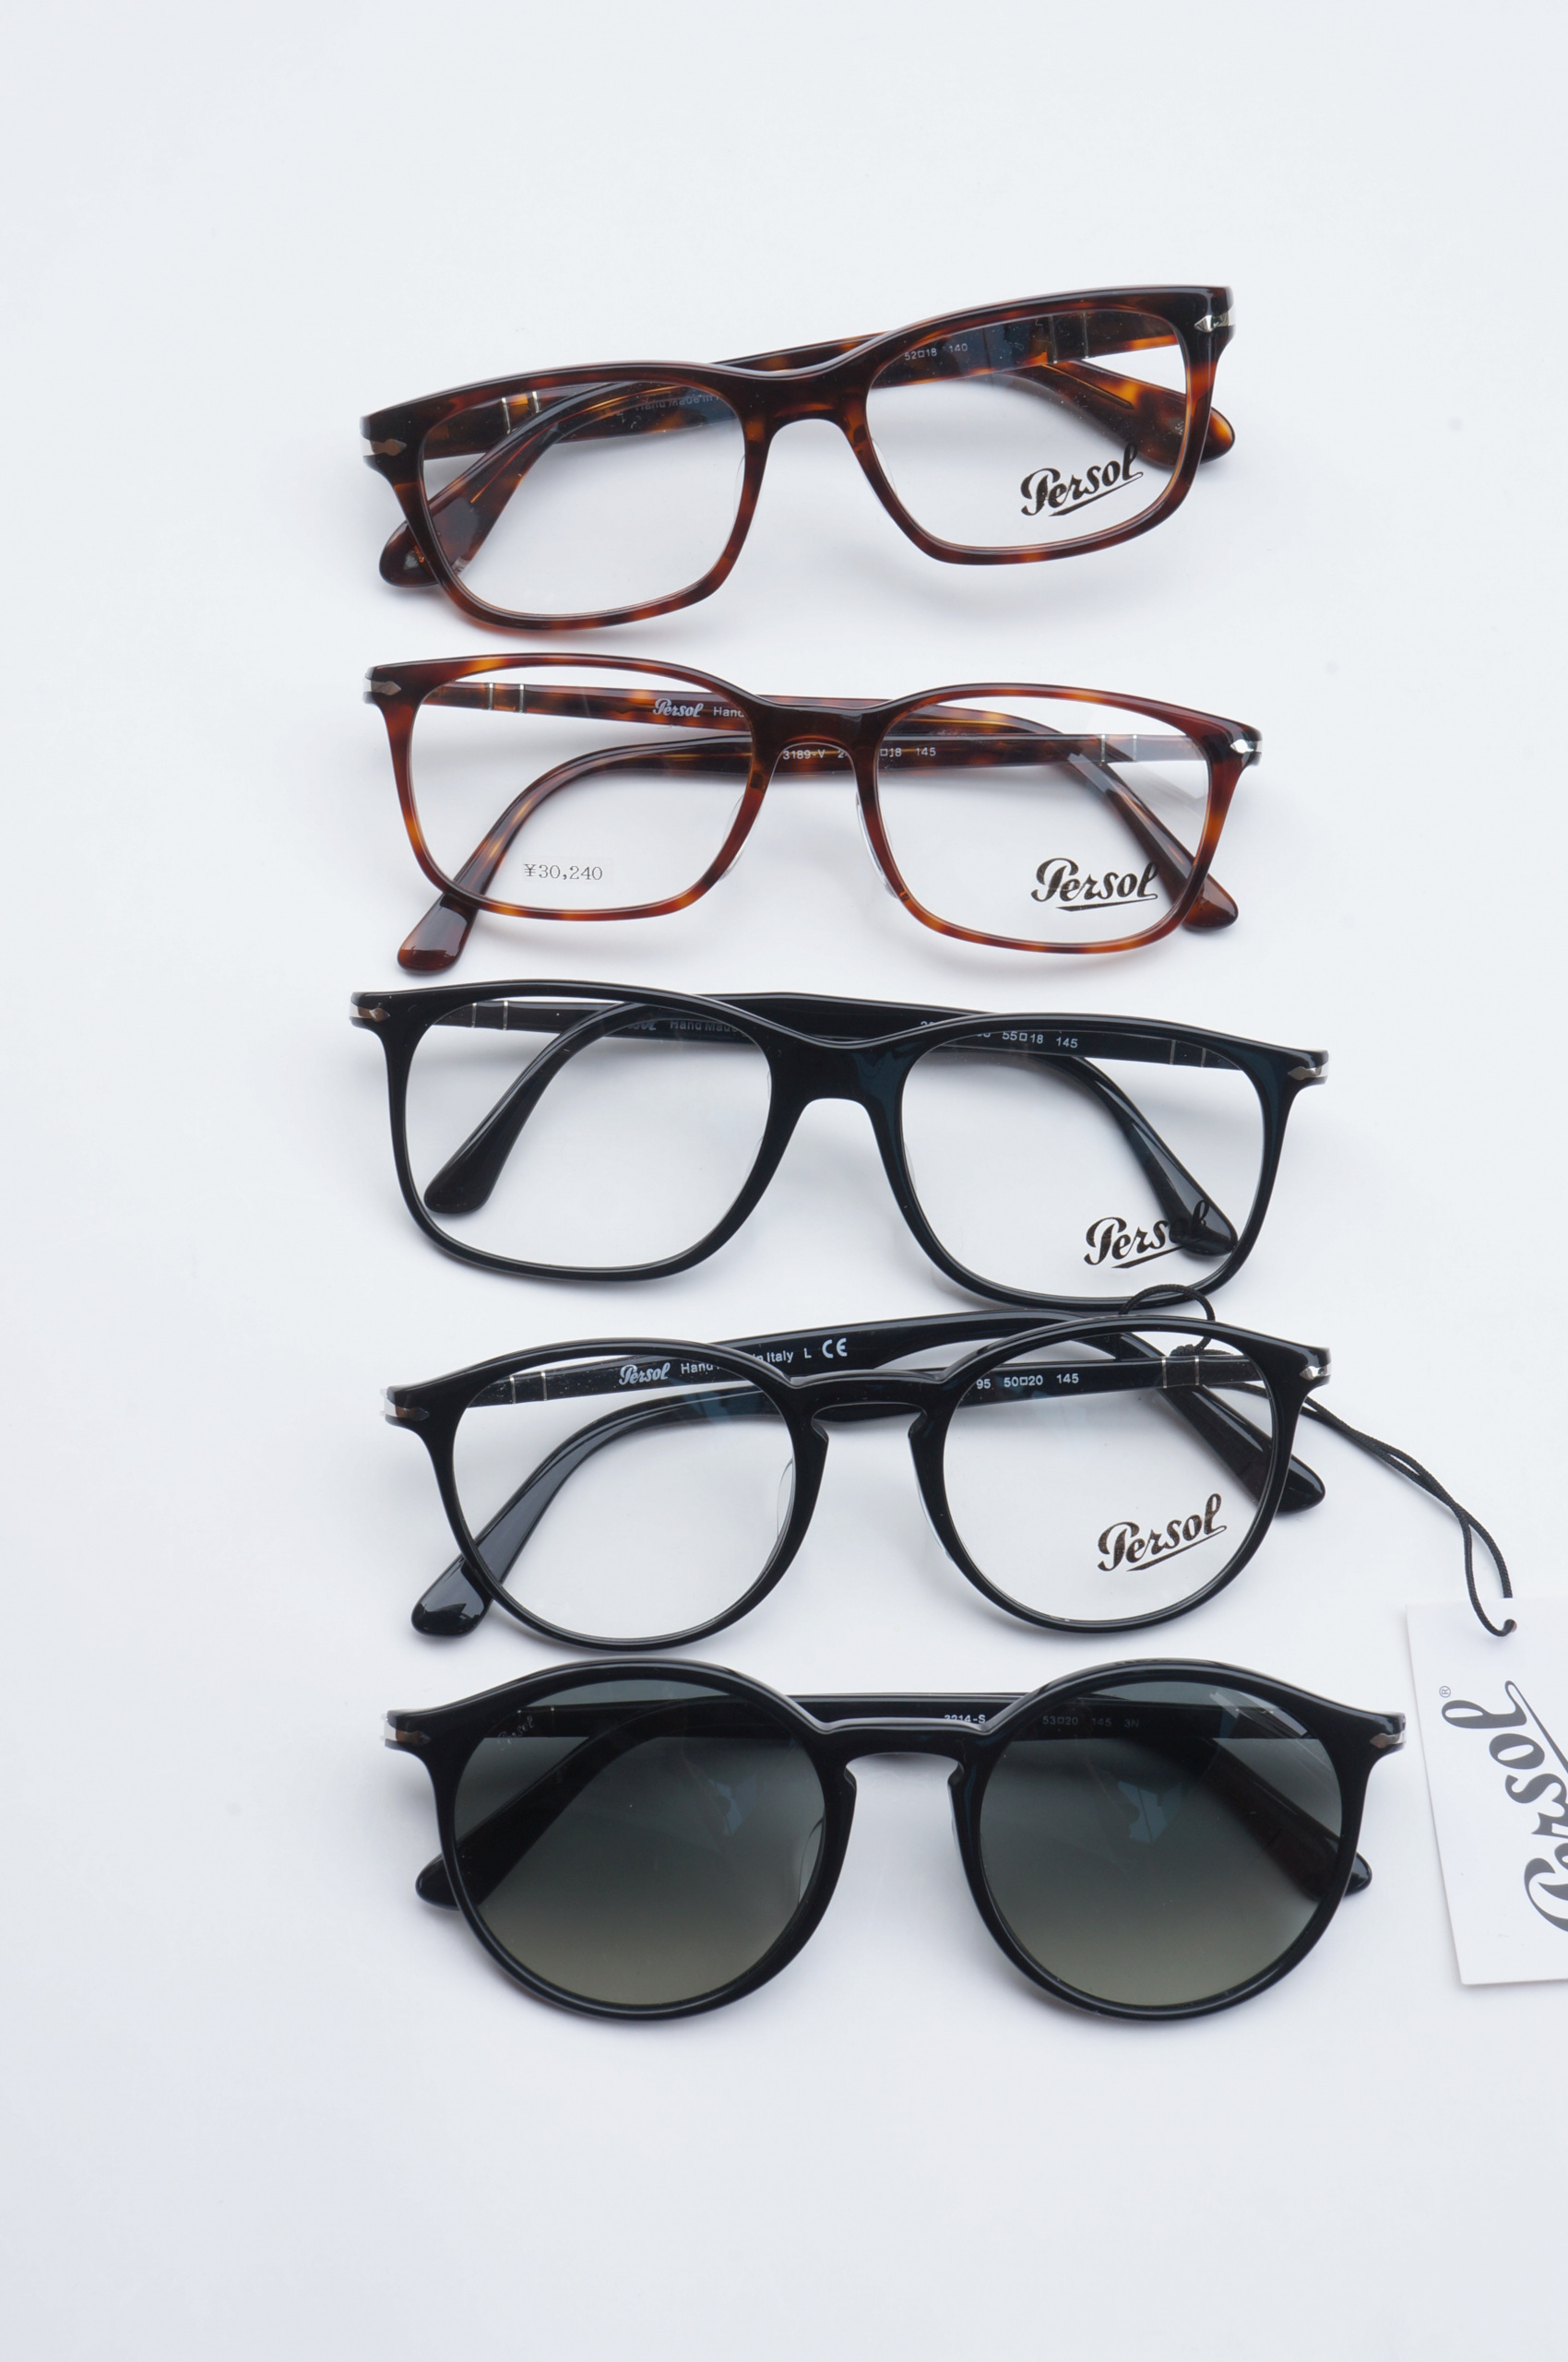 Persol-3012-3212-3214-3189-3213